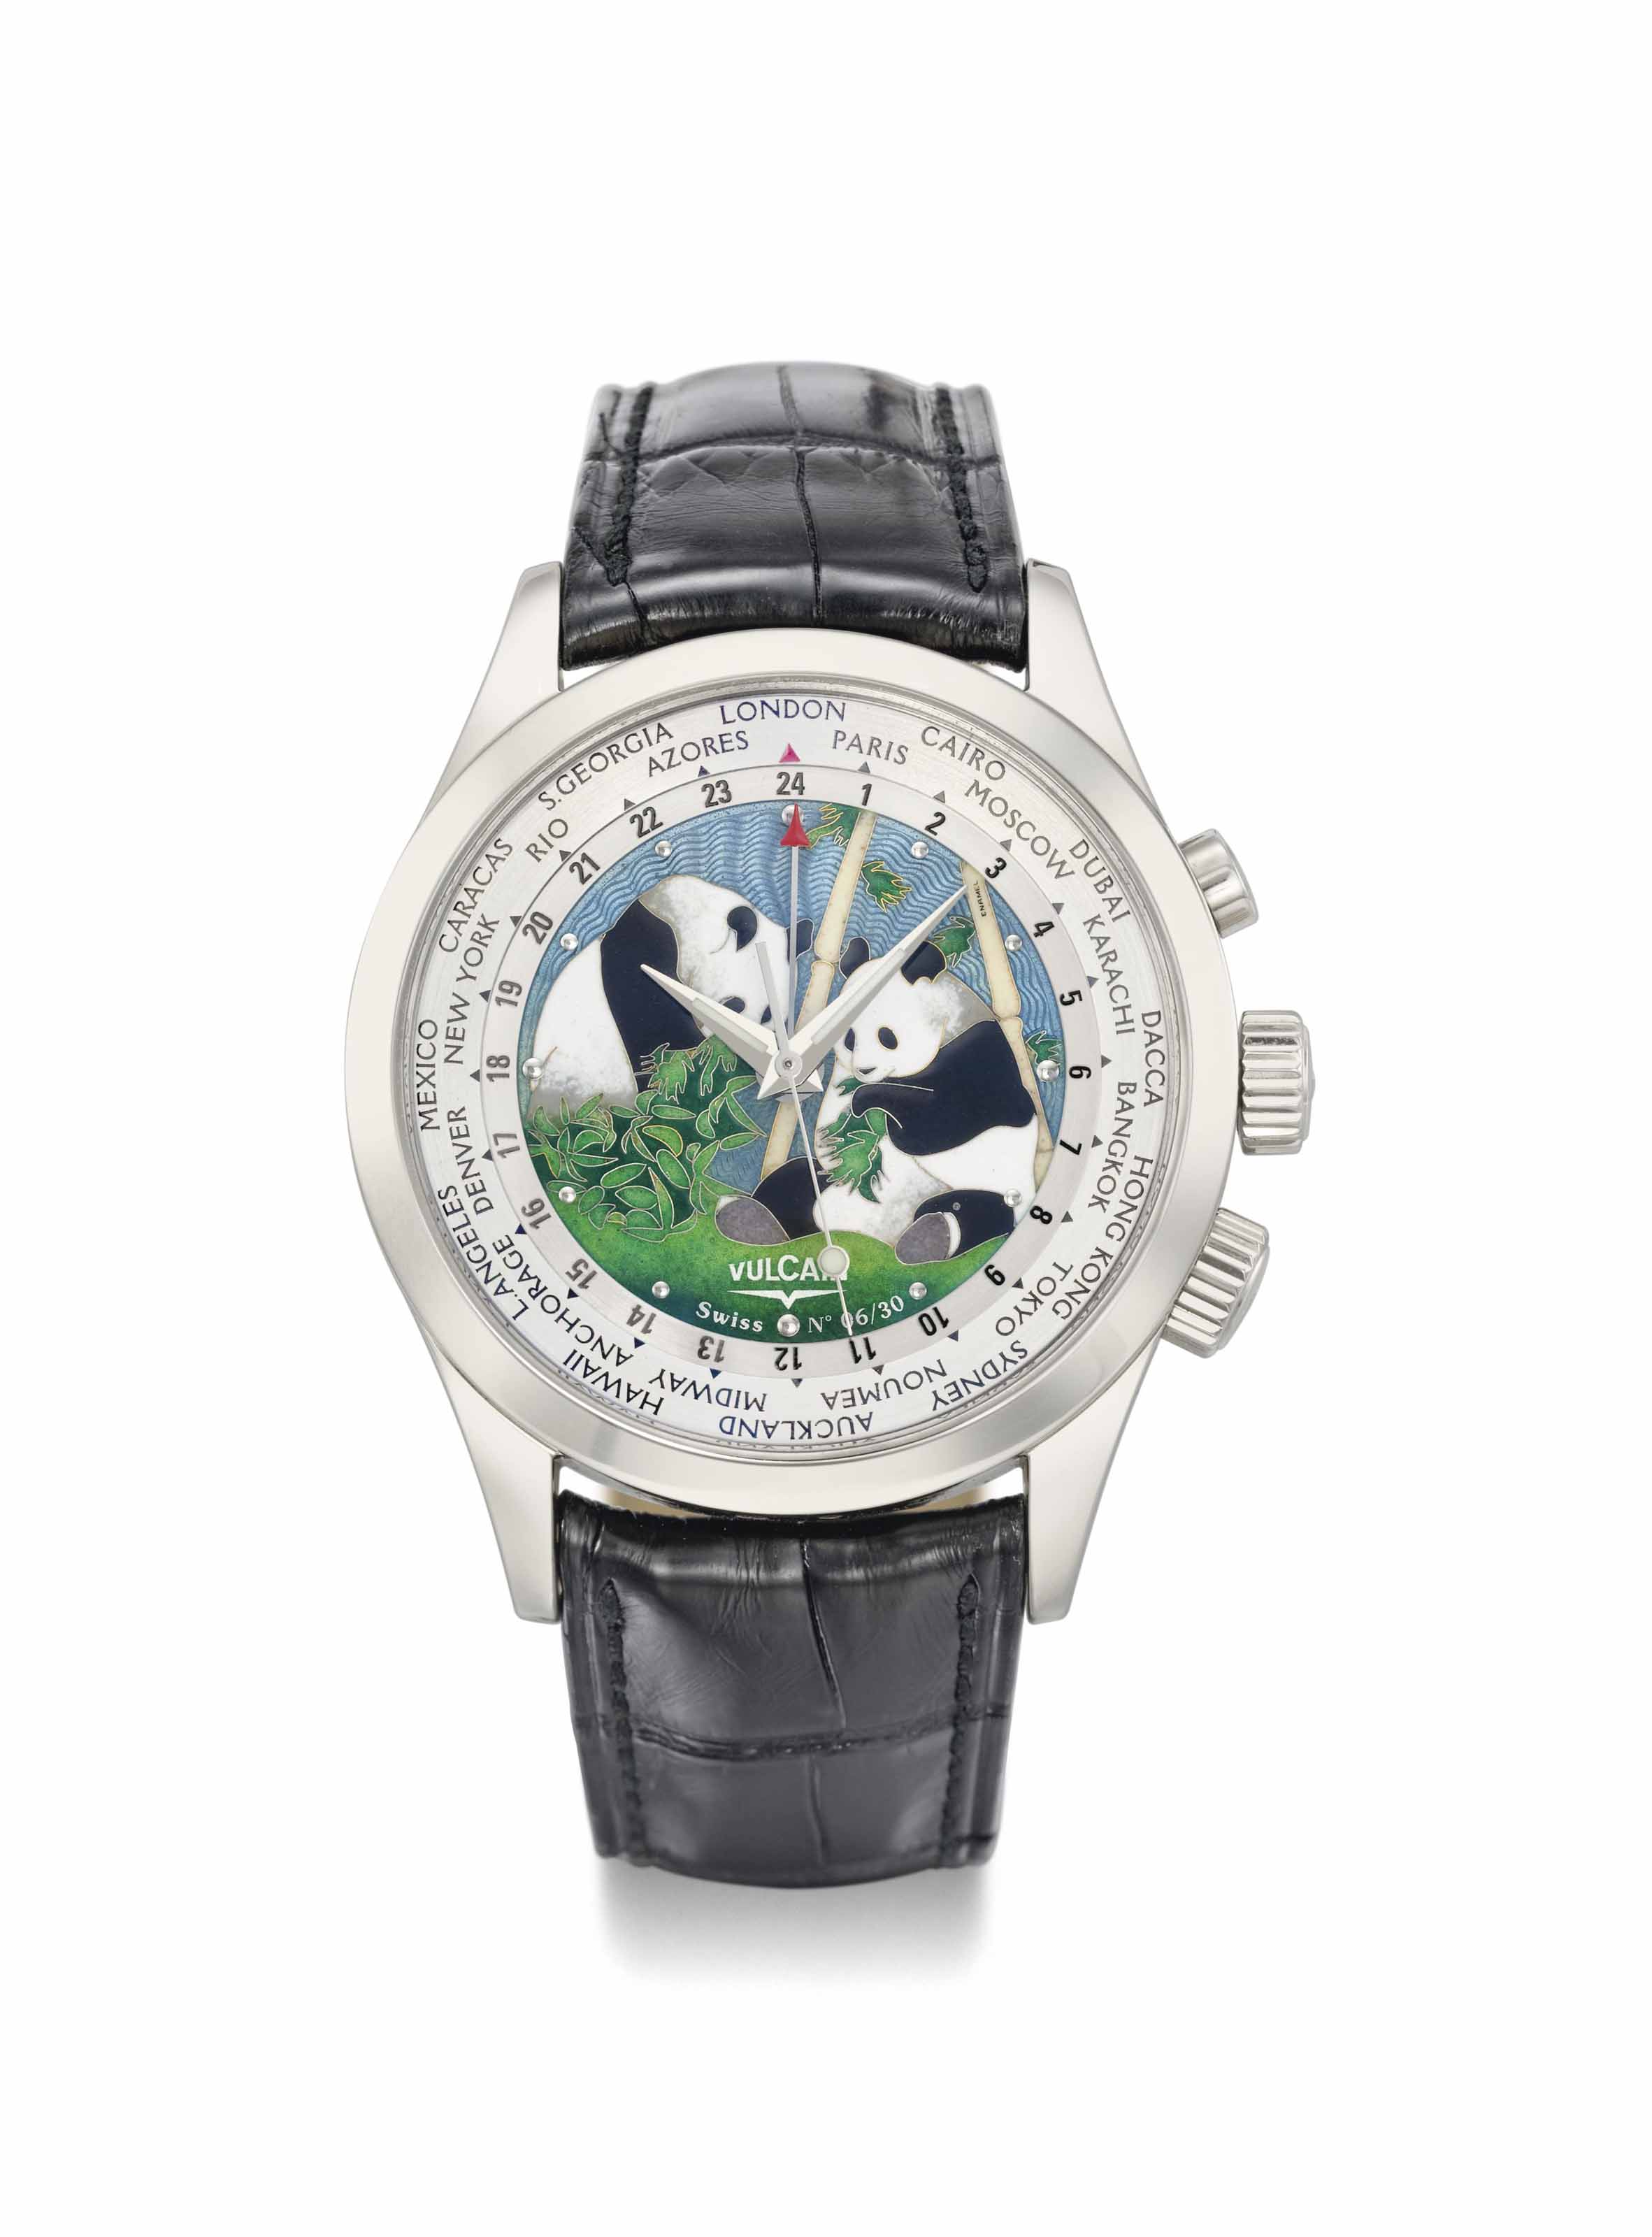 Vulcain. A fine 18K white gold limited edition world time wristwatch with sweep centre seconds, alarm and cloisonné enamel dial